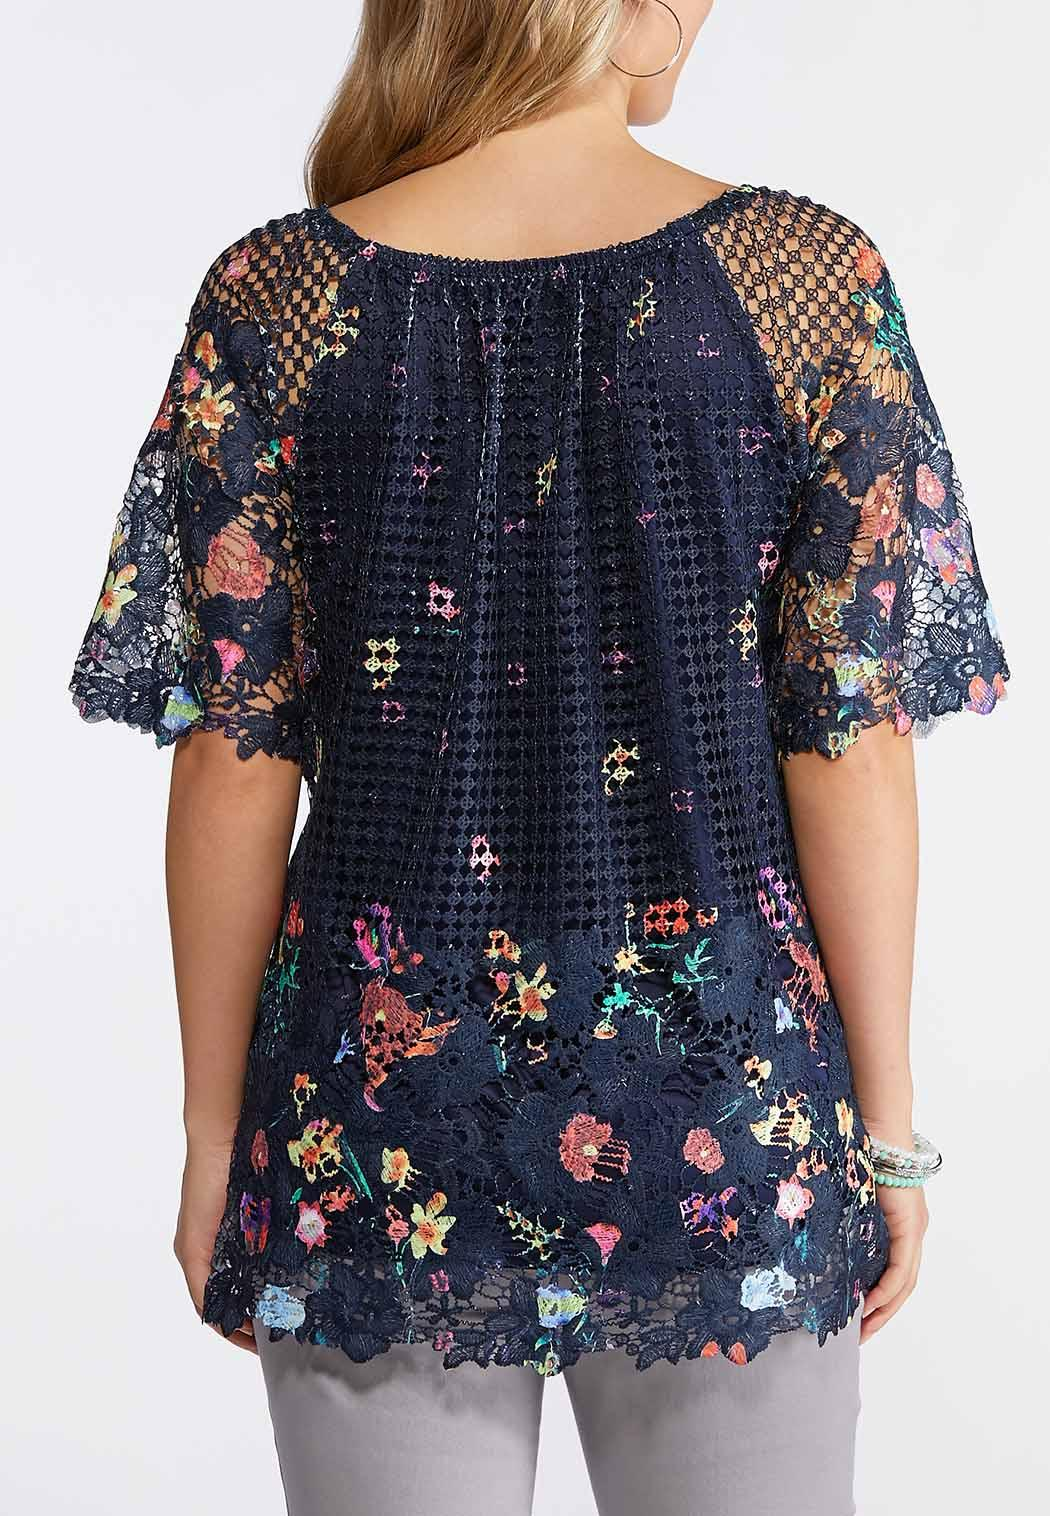 f91992632 Plus Size Navy Floral Crochet Overlay Top Shirts & Blouses Cato Fashions